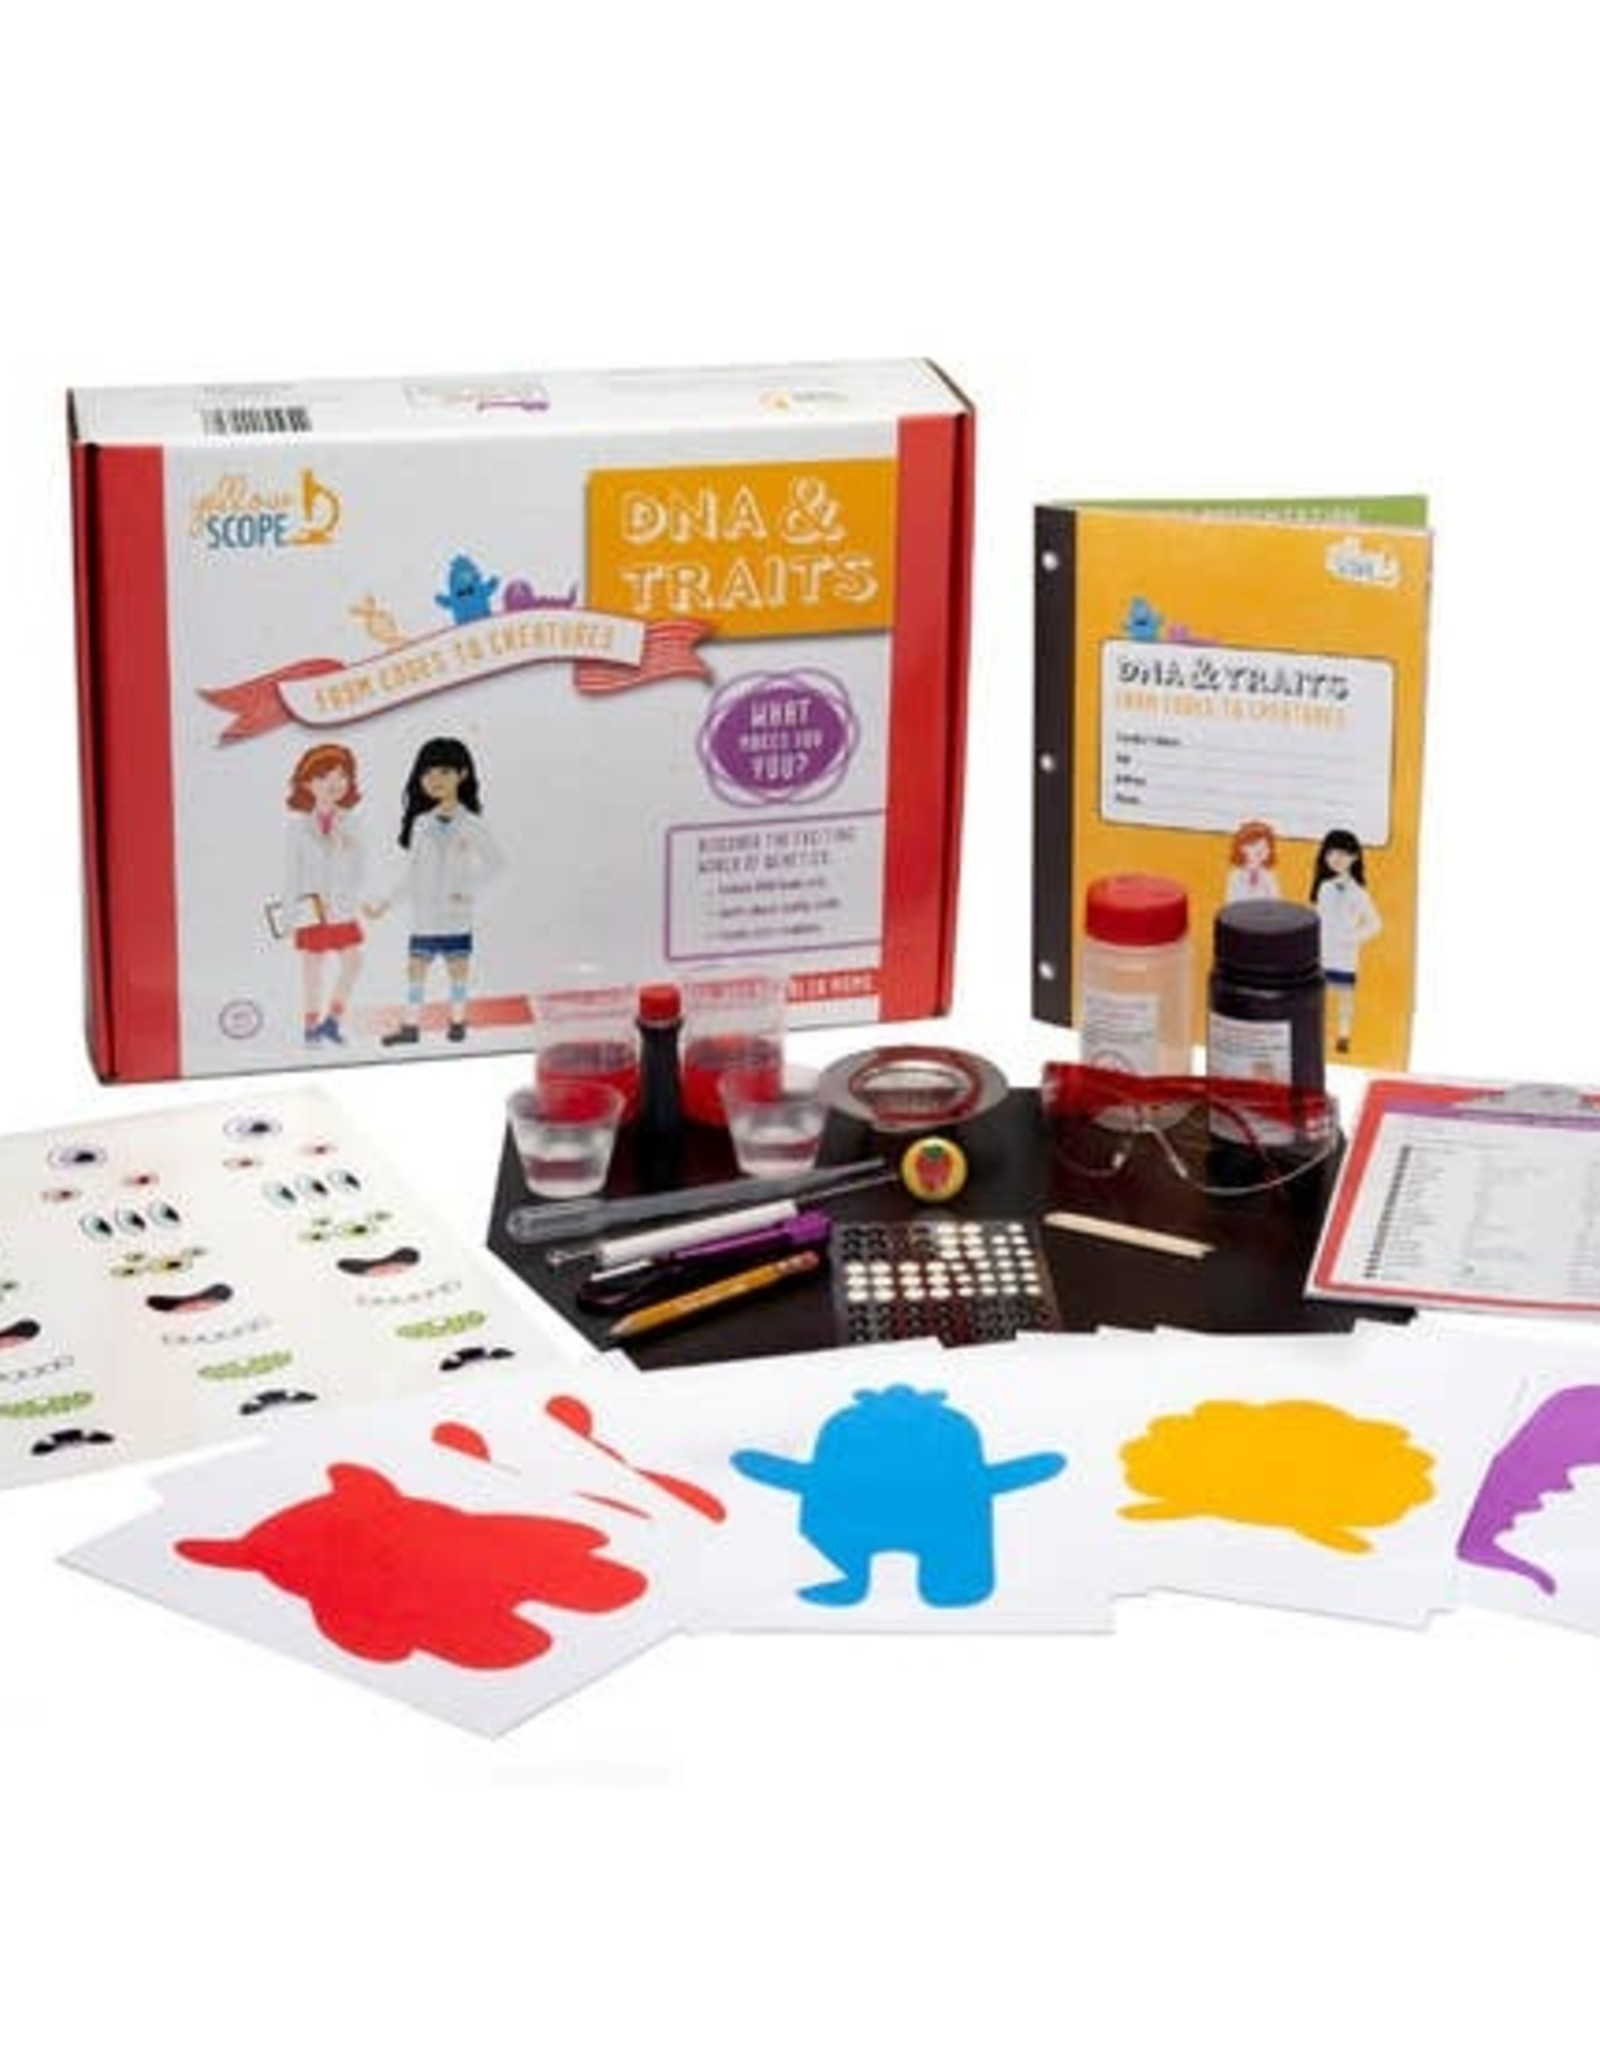 Yellow Scope DNA & Traits Kit:  From Codes to Creatures